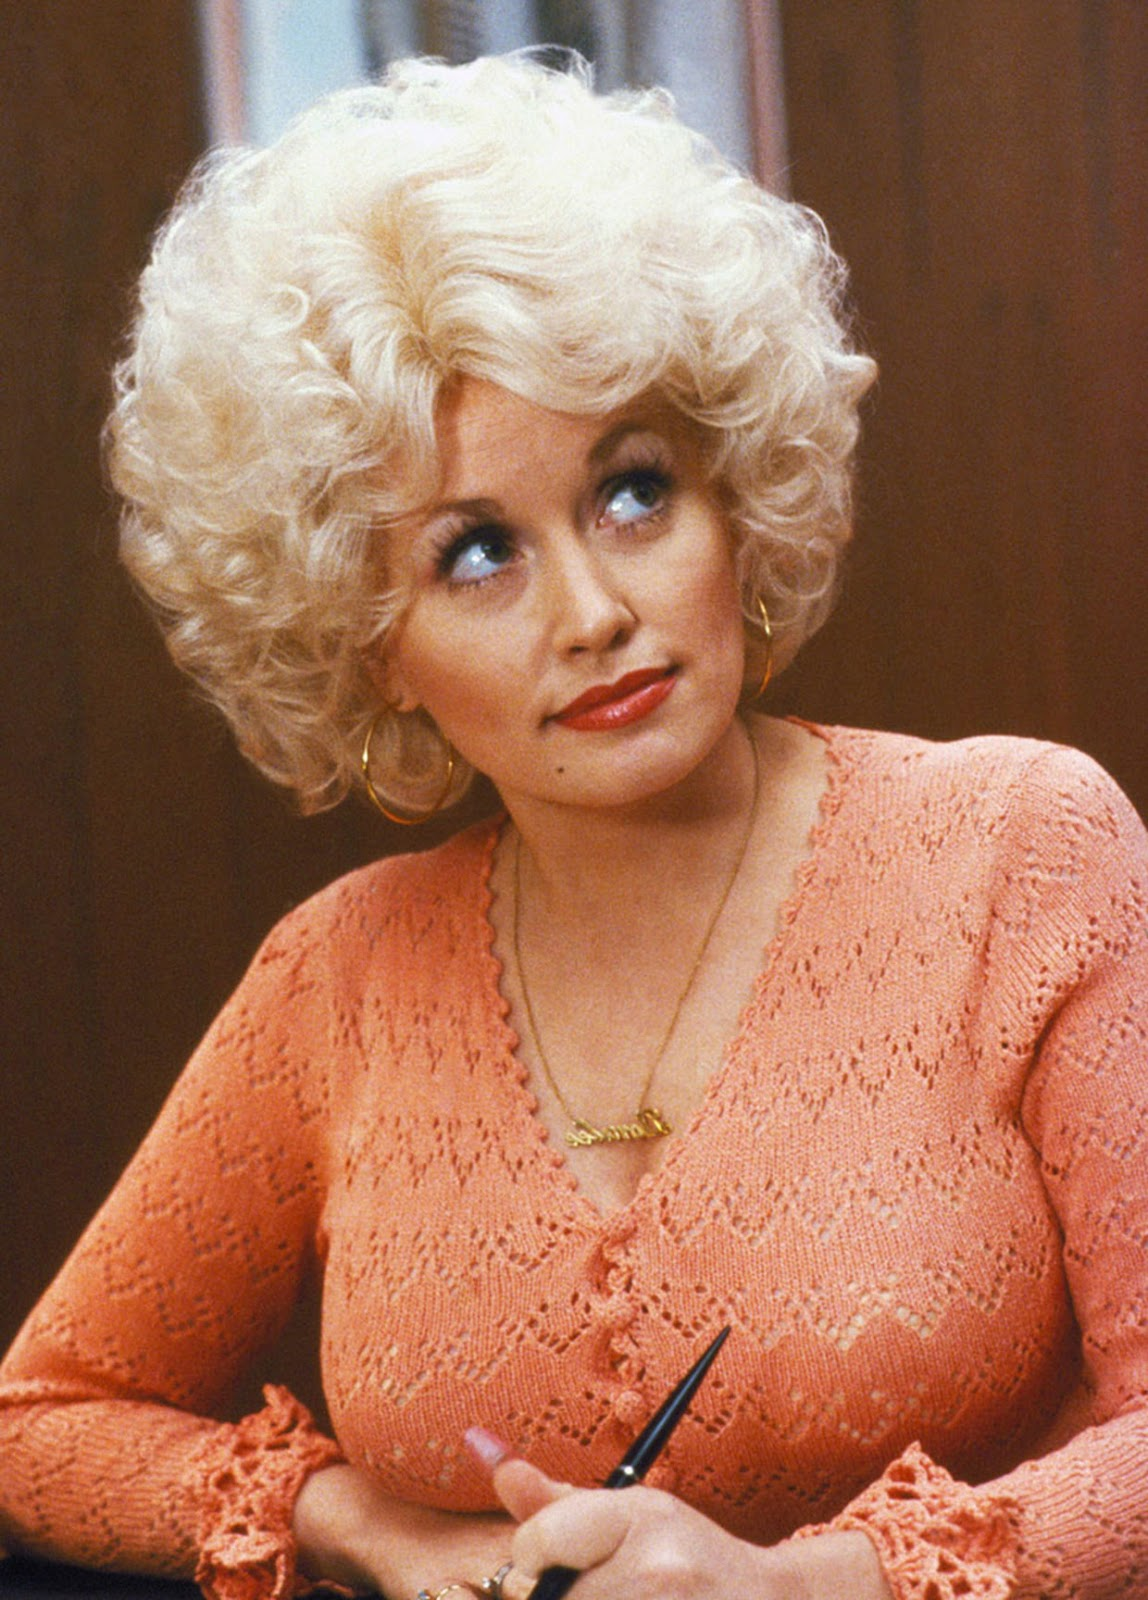 dolly parton - photo #17